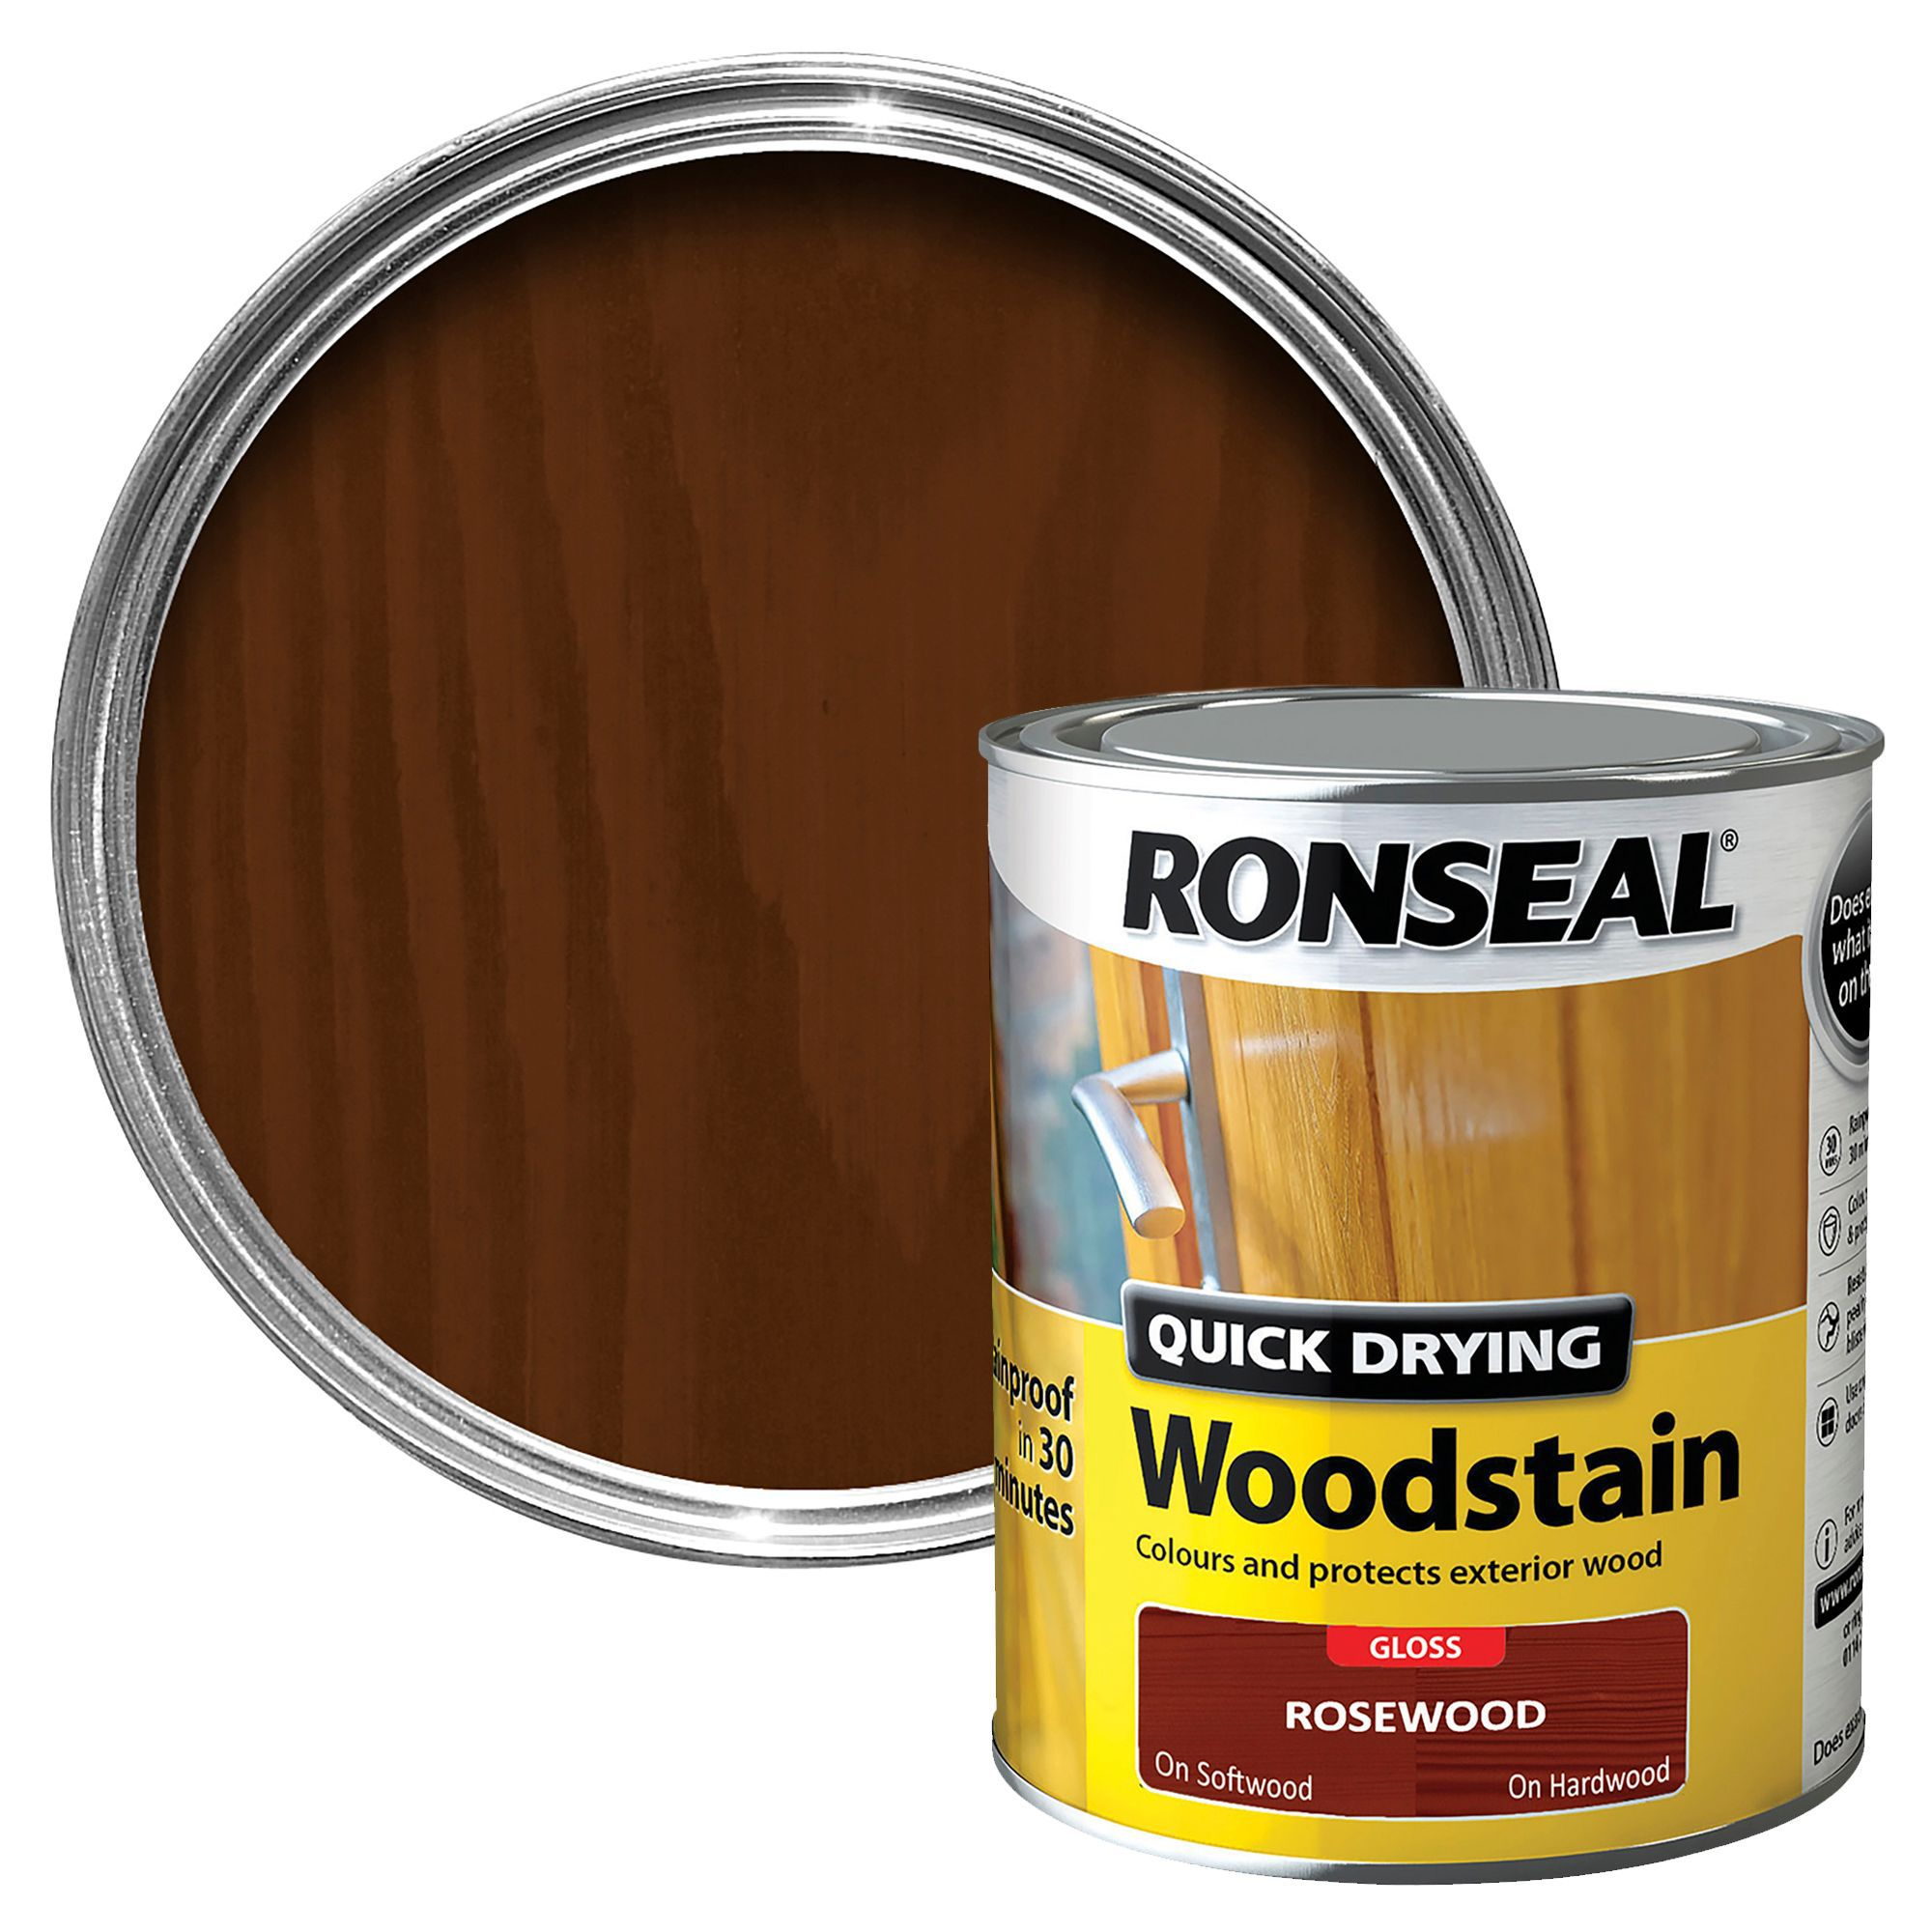 Ronseal Rosewood Gloss Woodstain Departments Diy At B Q